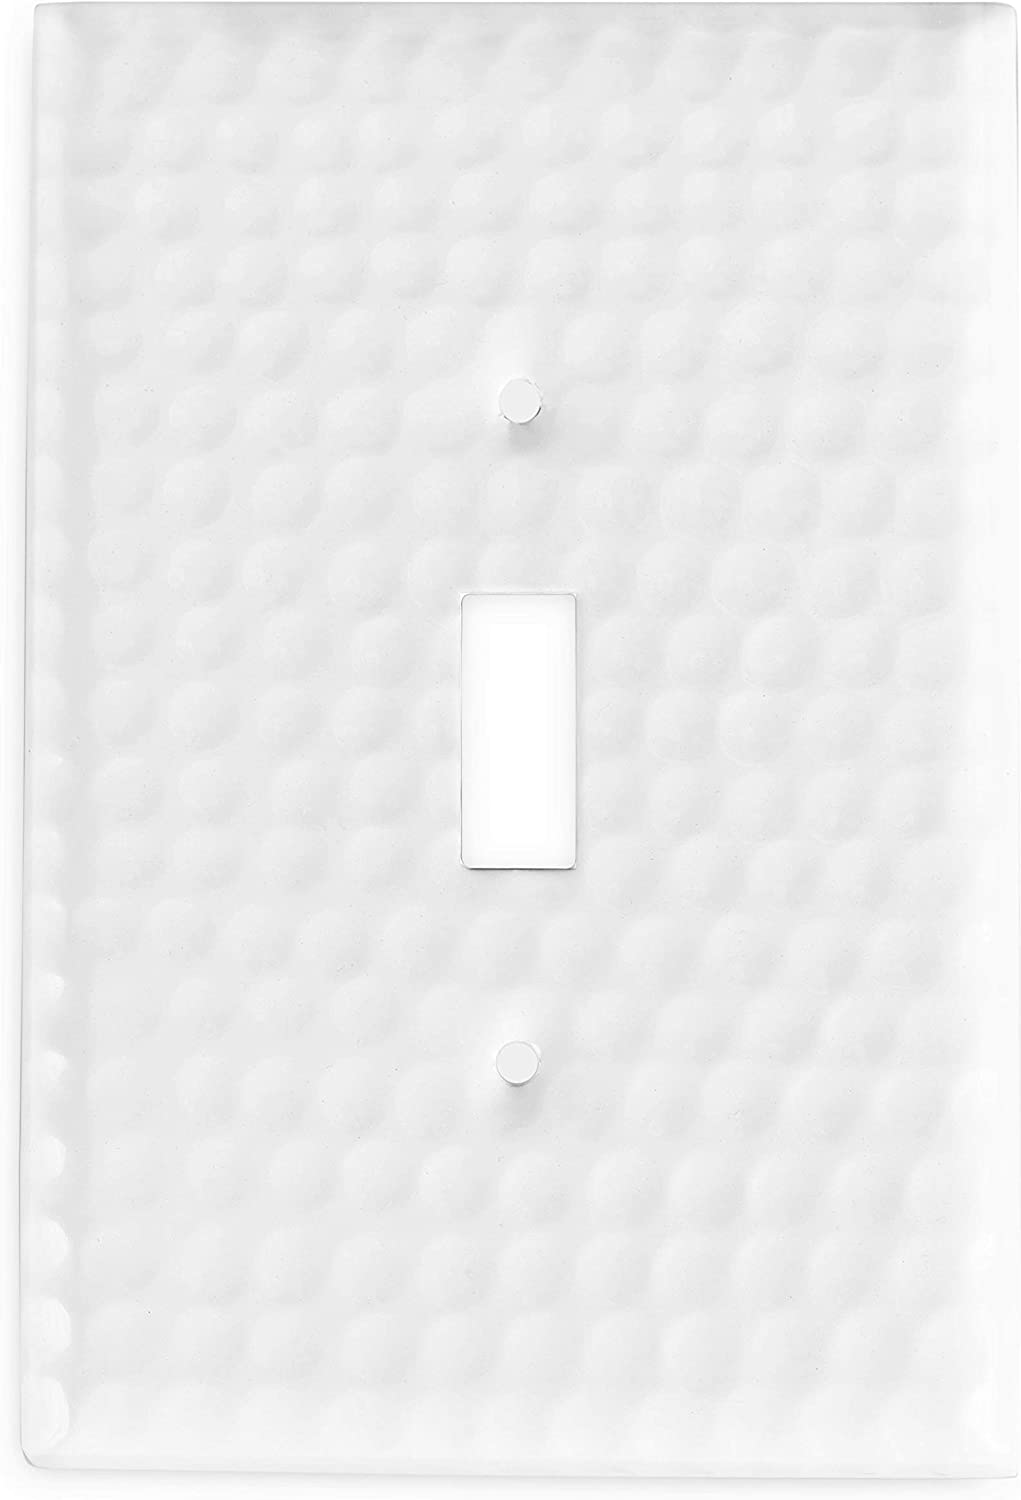 Monarch Abode 19007 Toggle Wall Plate, 1-Gang, Classic White